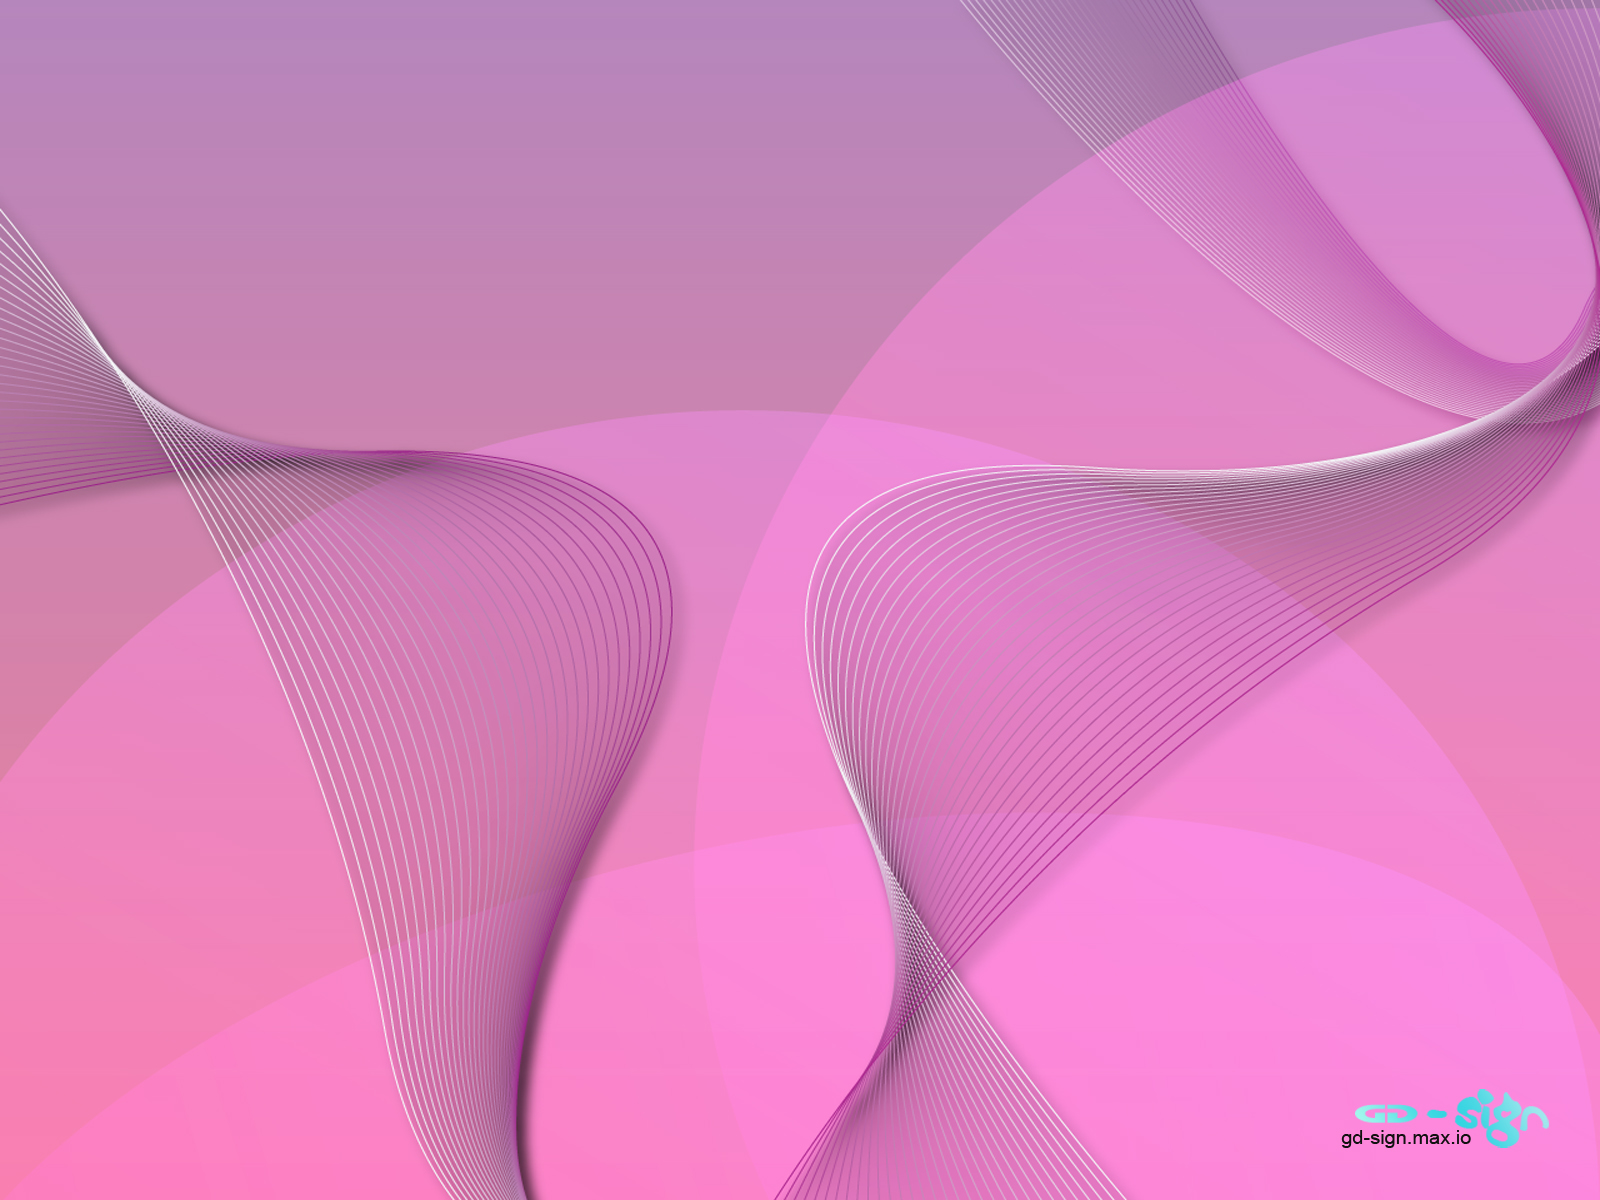 Abstract purple, 3d, Abstract, Best hd photos, Bspo06, HQ Photo